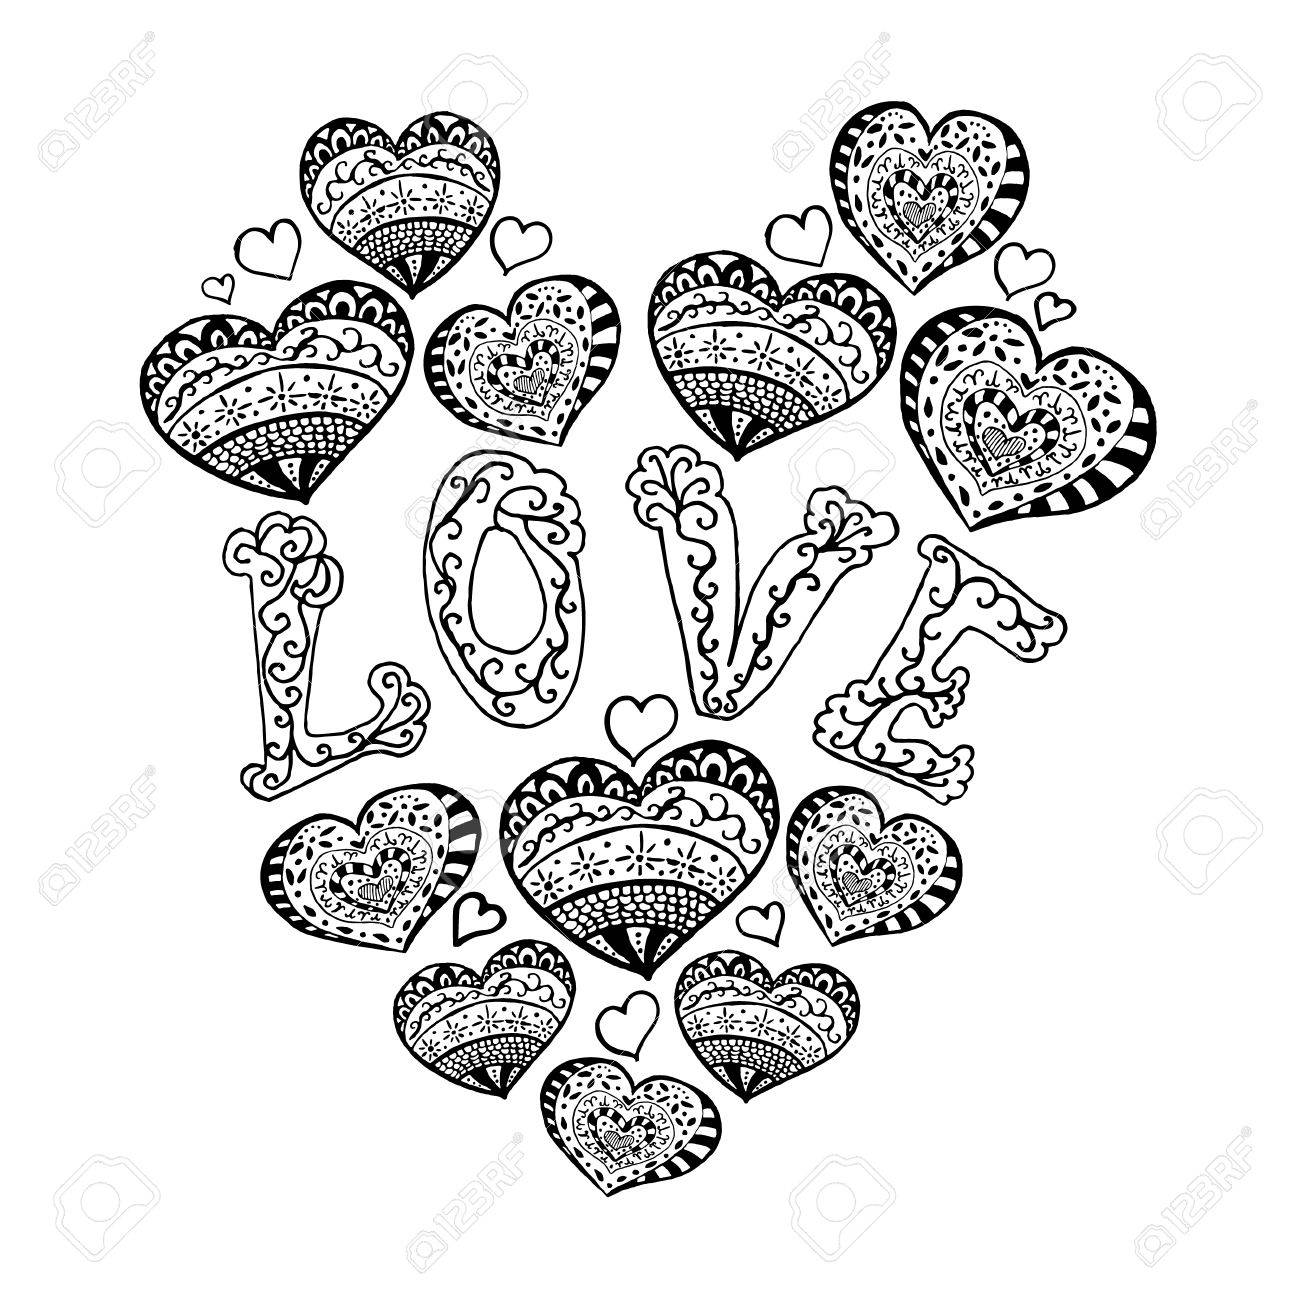 Zentangle Heart Pattern For Relax Hand Drawn Love